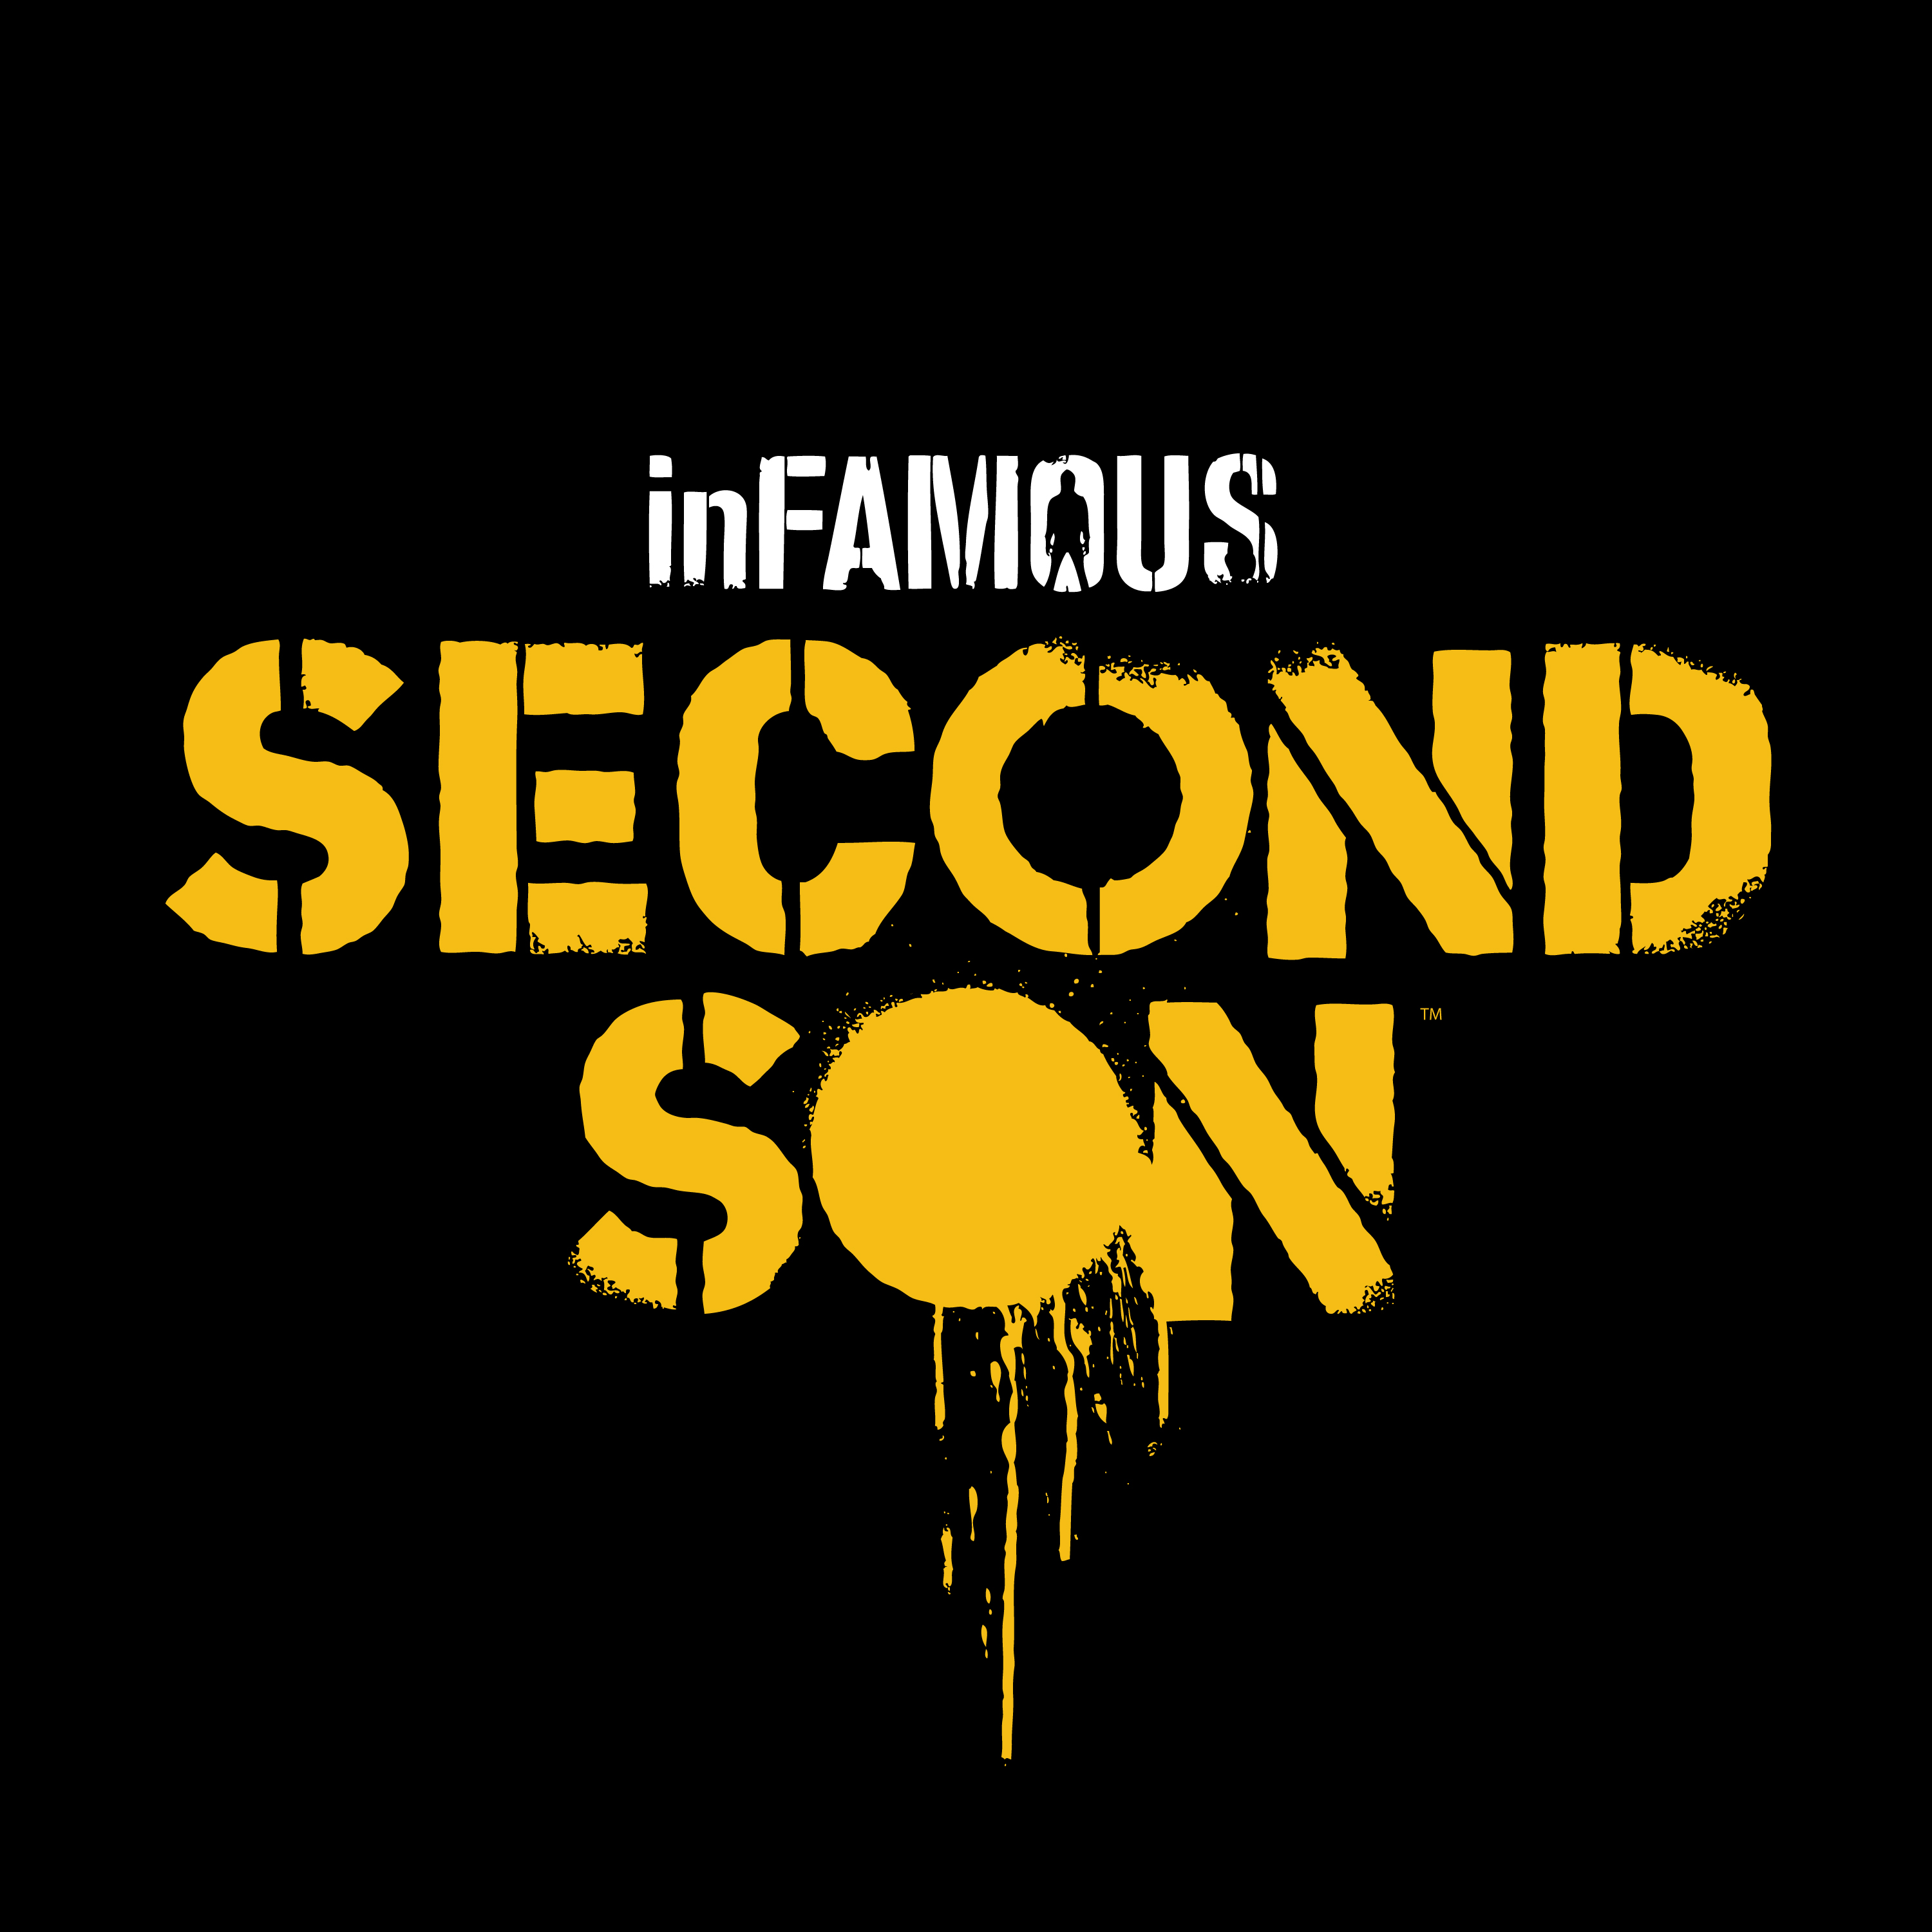 new infamous game for the PlayStation 4 called, inFAMOUS: Second Son